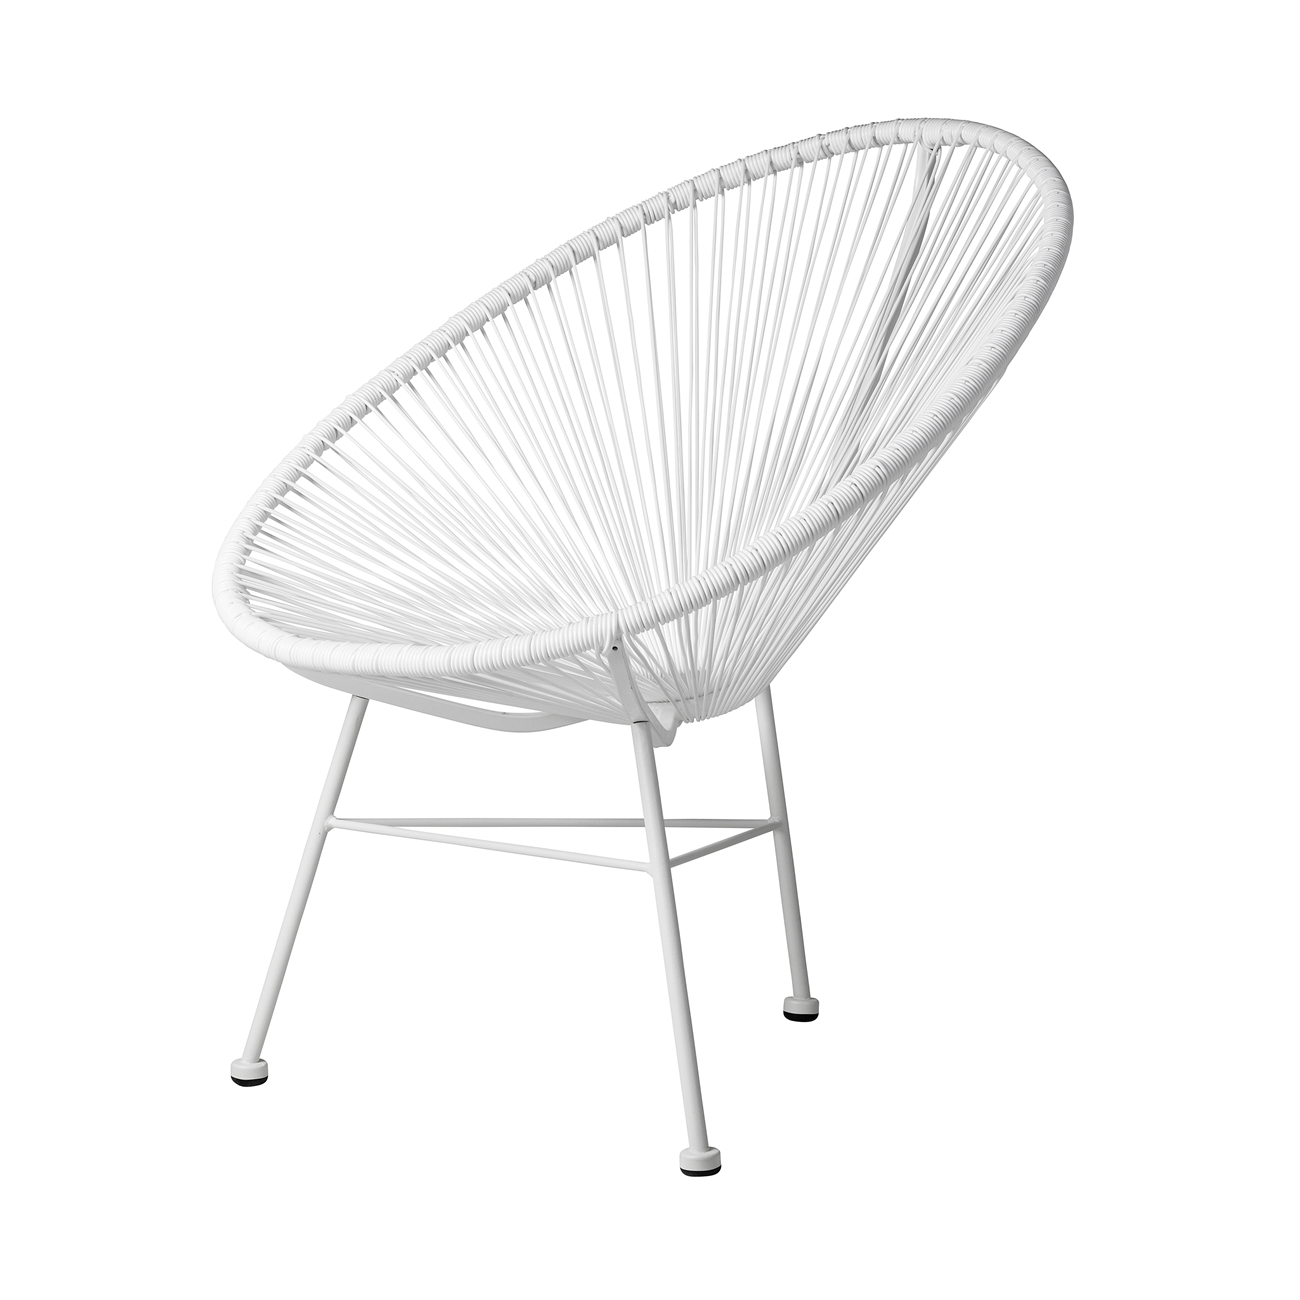 Terrific Acapulco Indoor Outdoor Lounge Chair White Weave On White Frame Caraccident5 Cool Chair Designs And Ideas Caraccident5Info